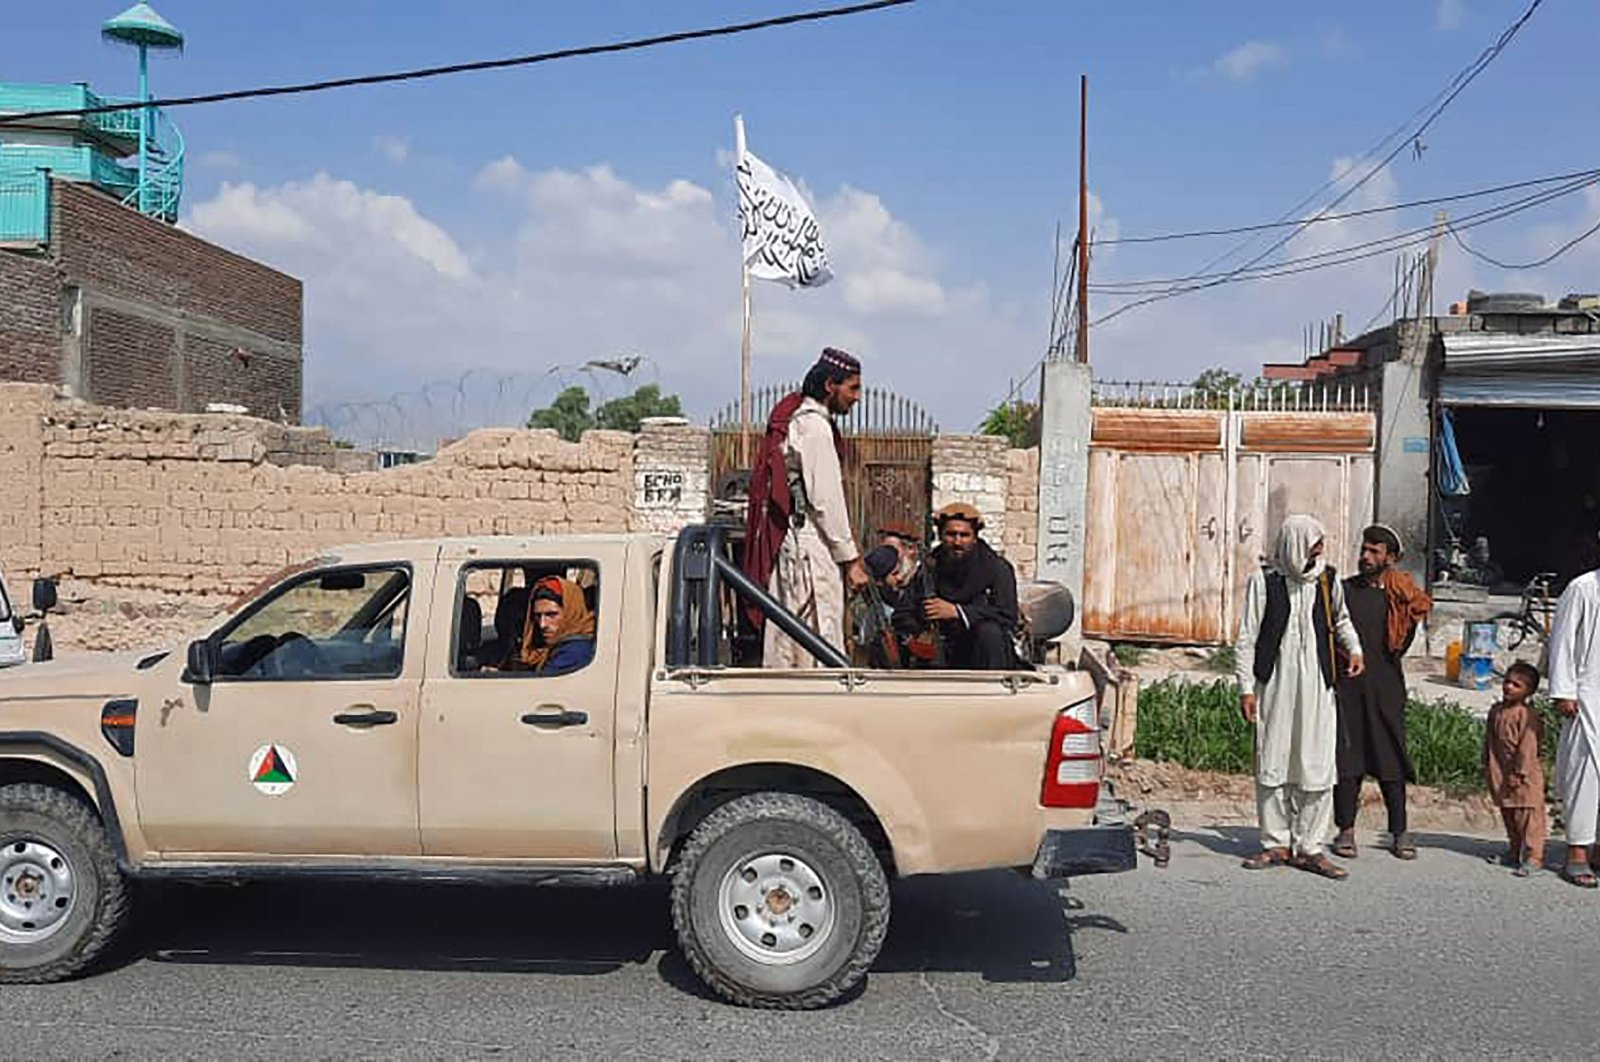 Taliban fighters drive an Afghan National Army (ANA) vehicle through the streets of Laghman province, Afghanistan, on Aug. 15, 2021. (AFP Photo)